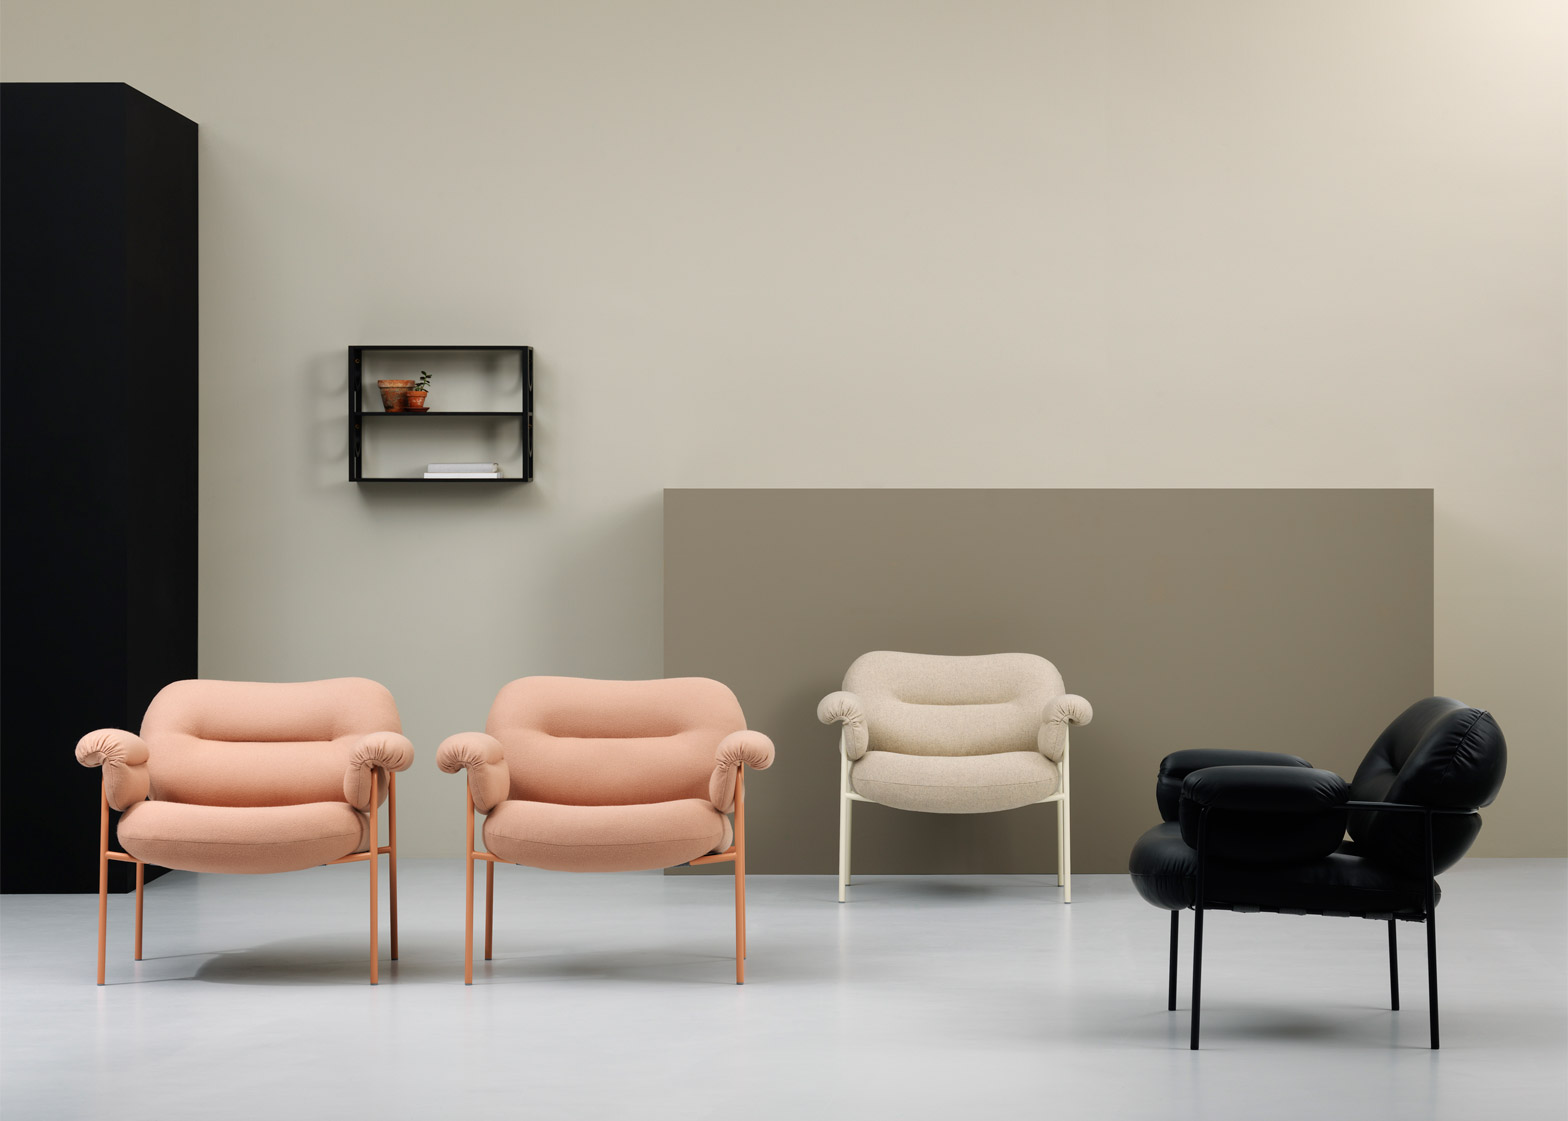 Bollo chair by Andreas Engesvik for Fogia